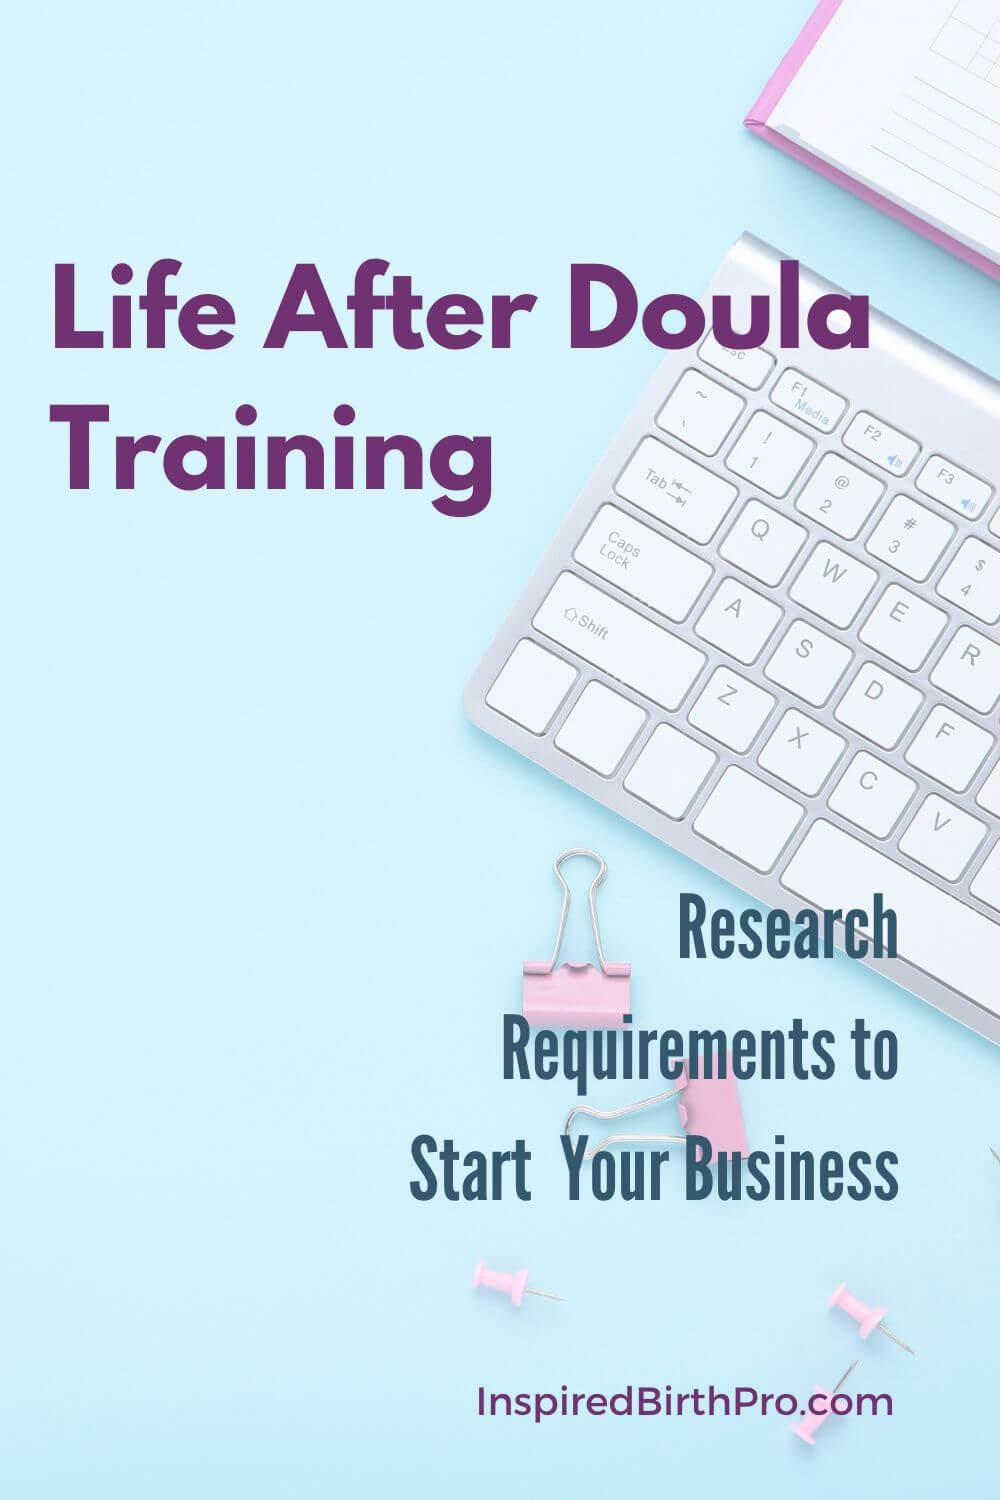 Life After Doula Training - Research Requirements to Start Your Business